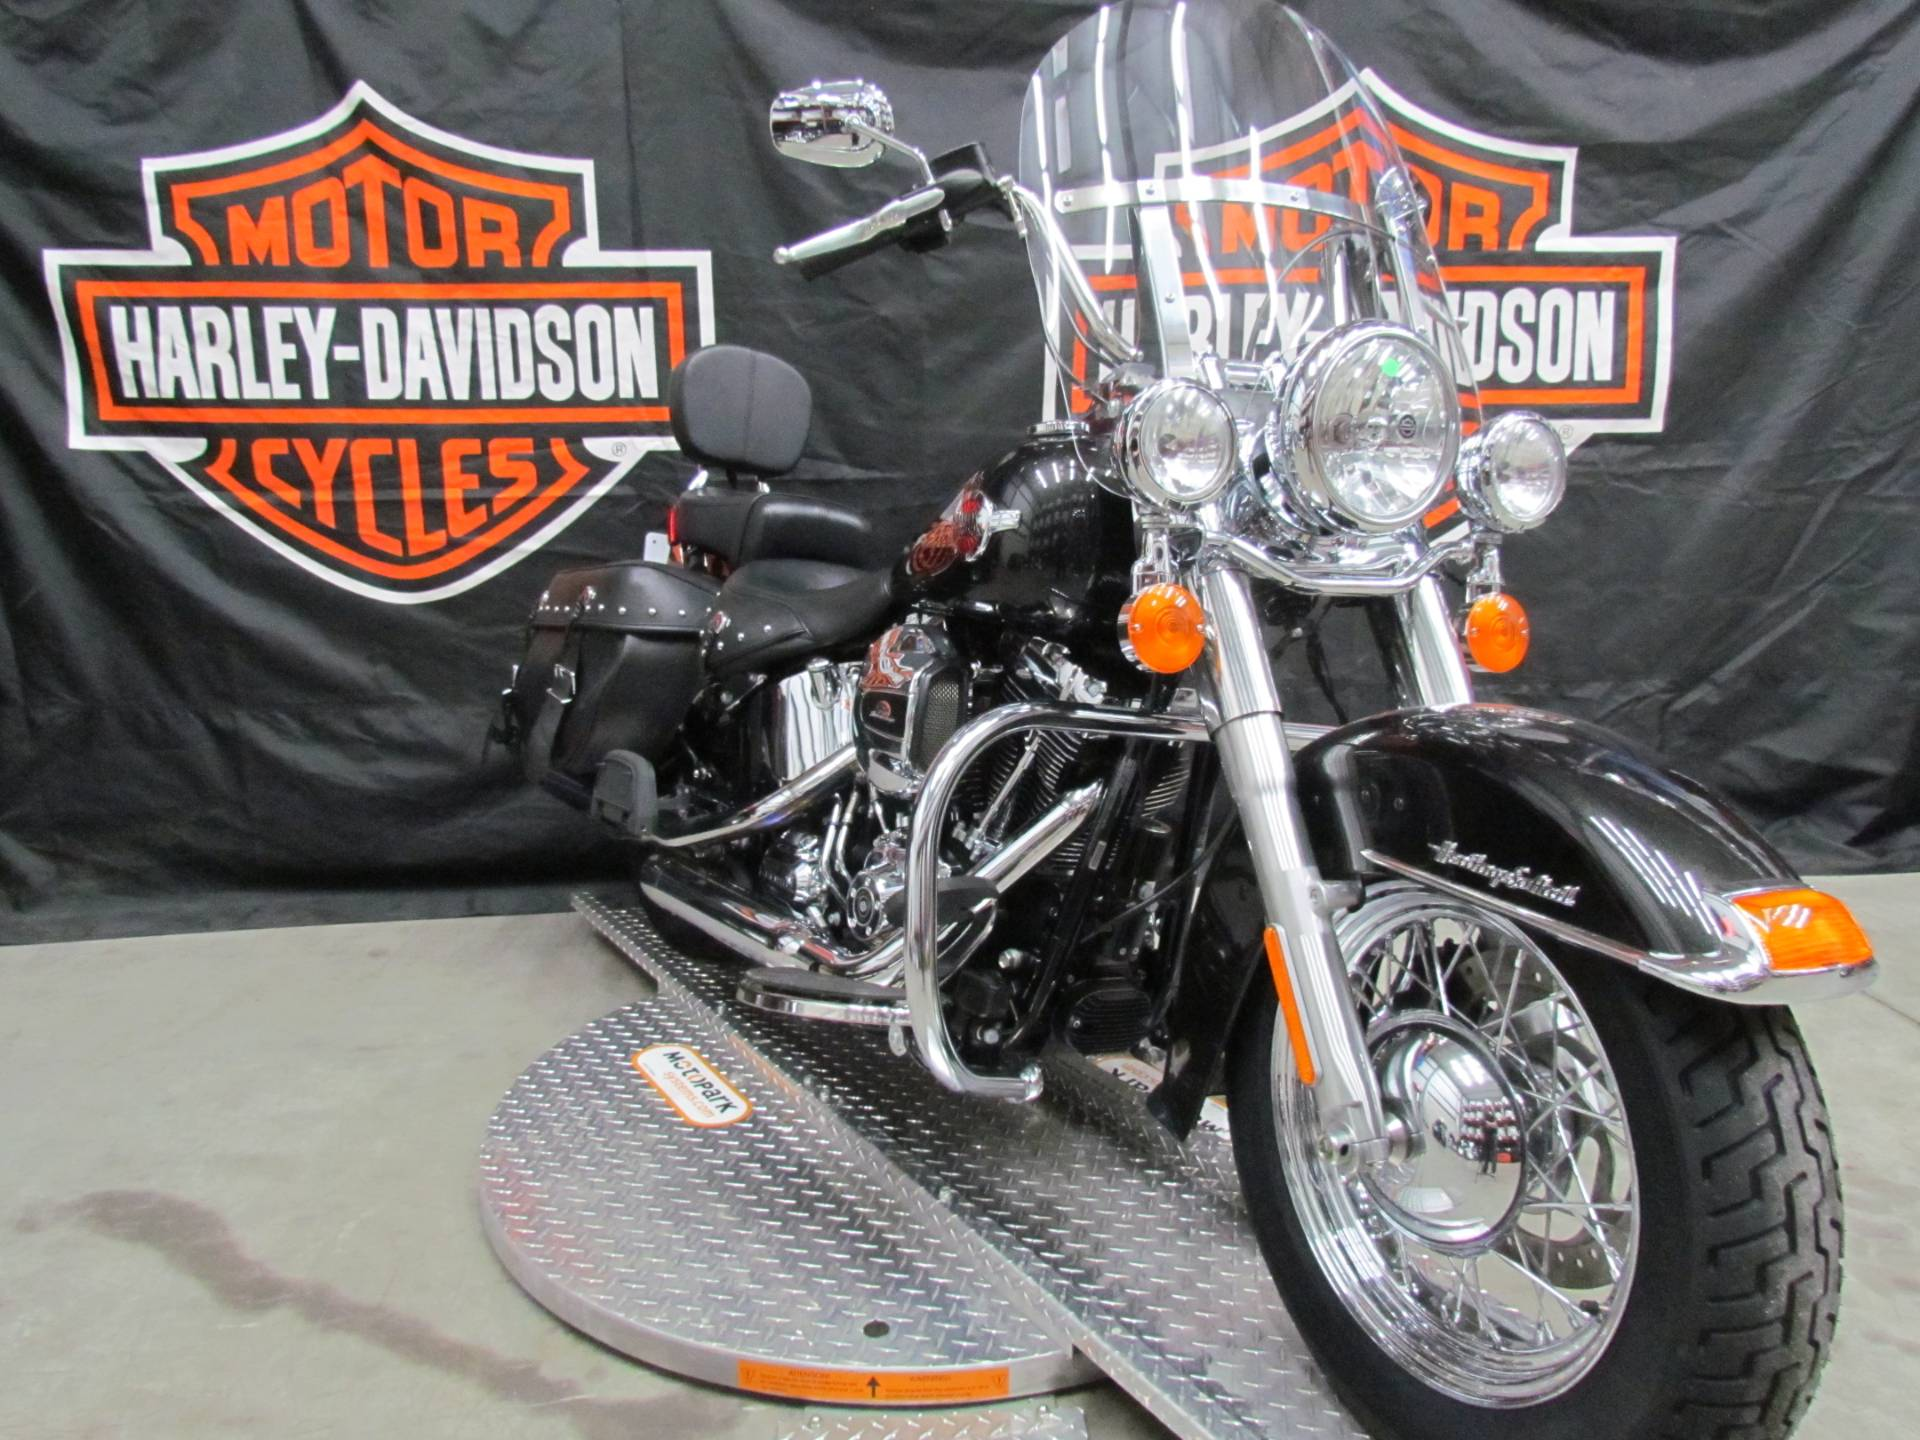 Used 2017 Harley Davidson Heritage Softail Classic Motorcycles In New York Mills